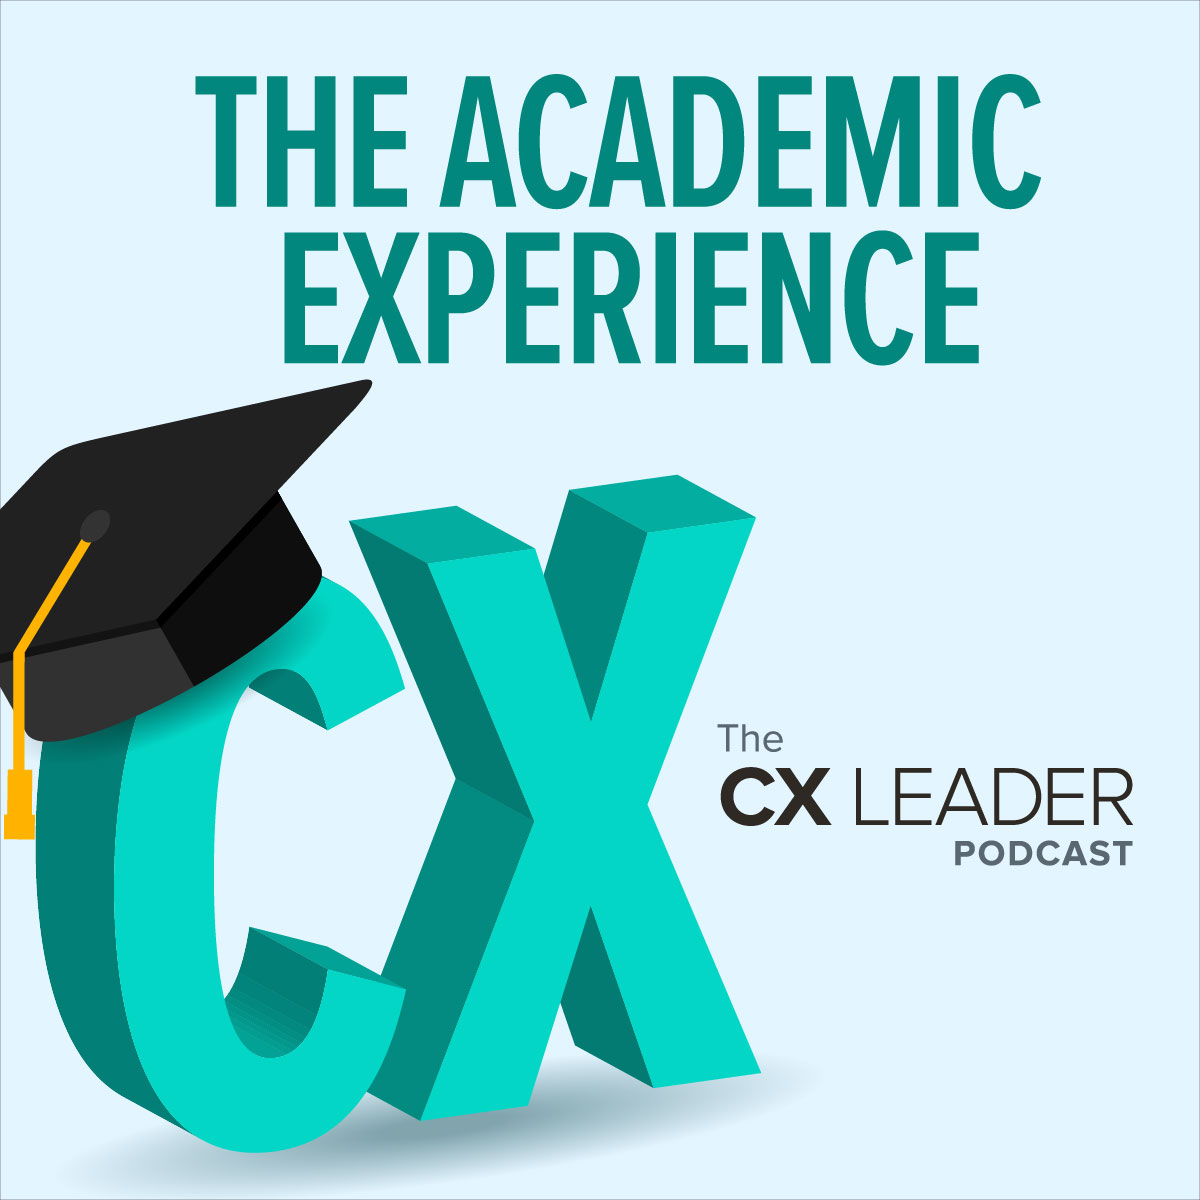 The Academic Experience